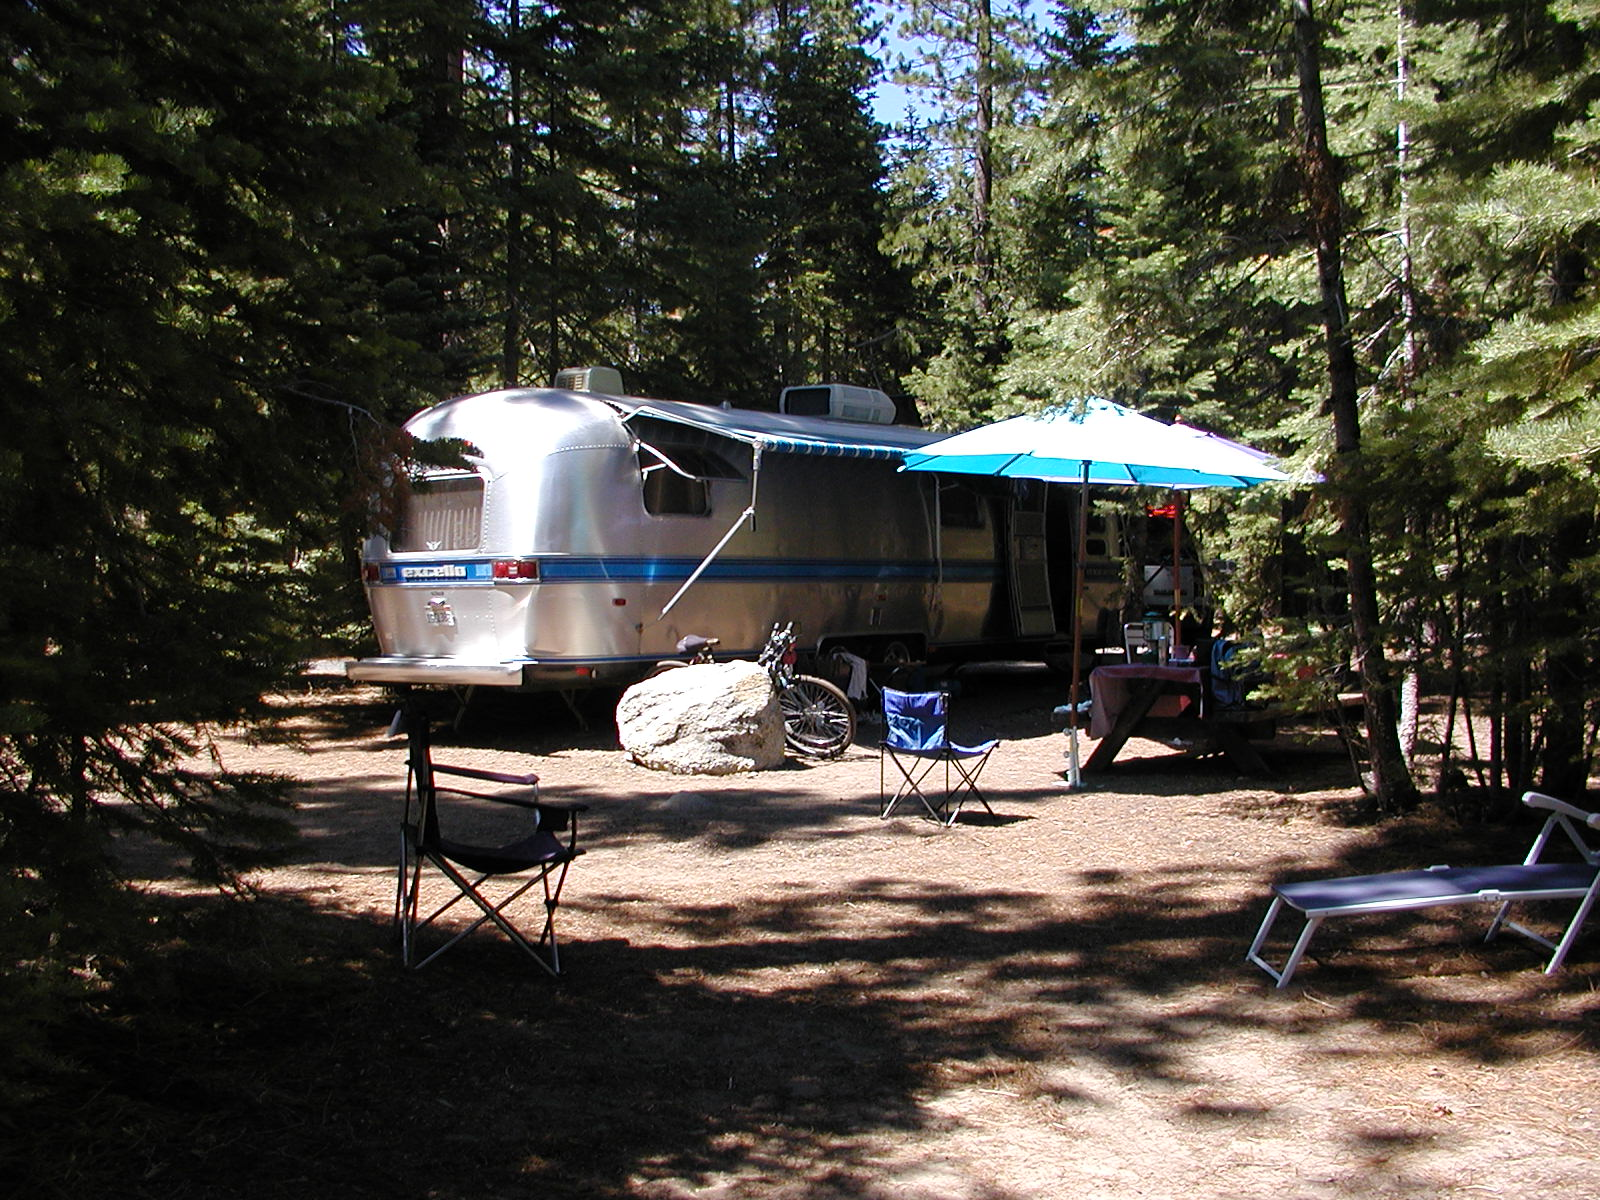 Click image for larger version  Name:Sugar Pine Point 017.jpg Views:105 Size:444.9 KB ID:62589